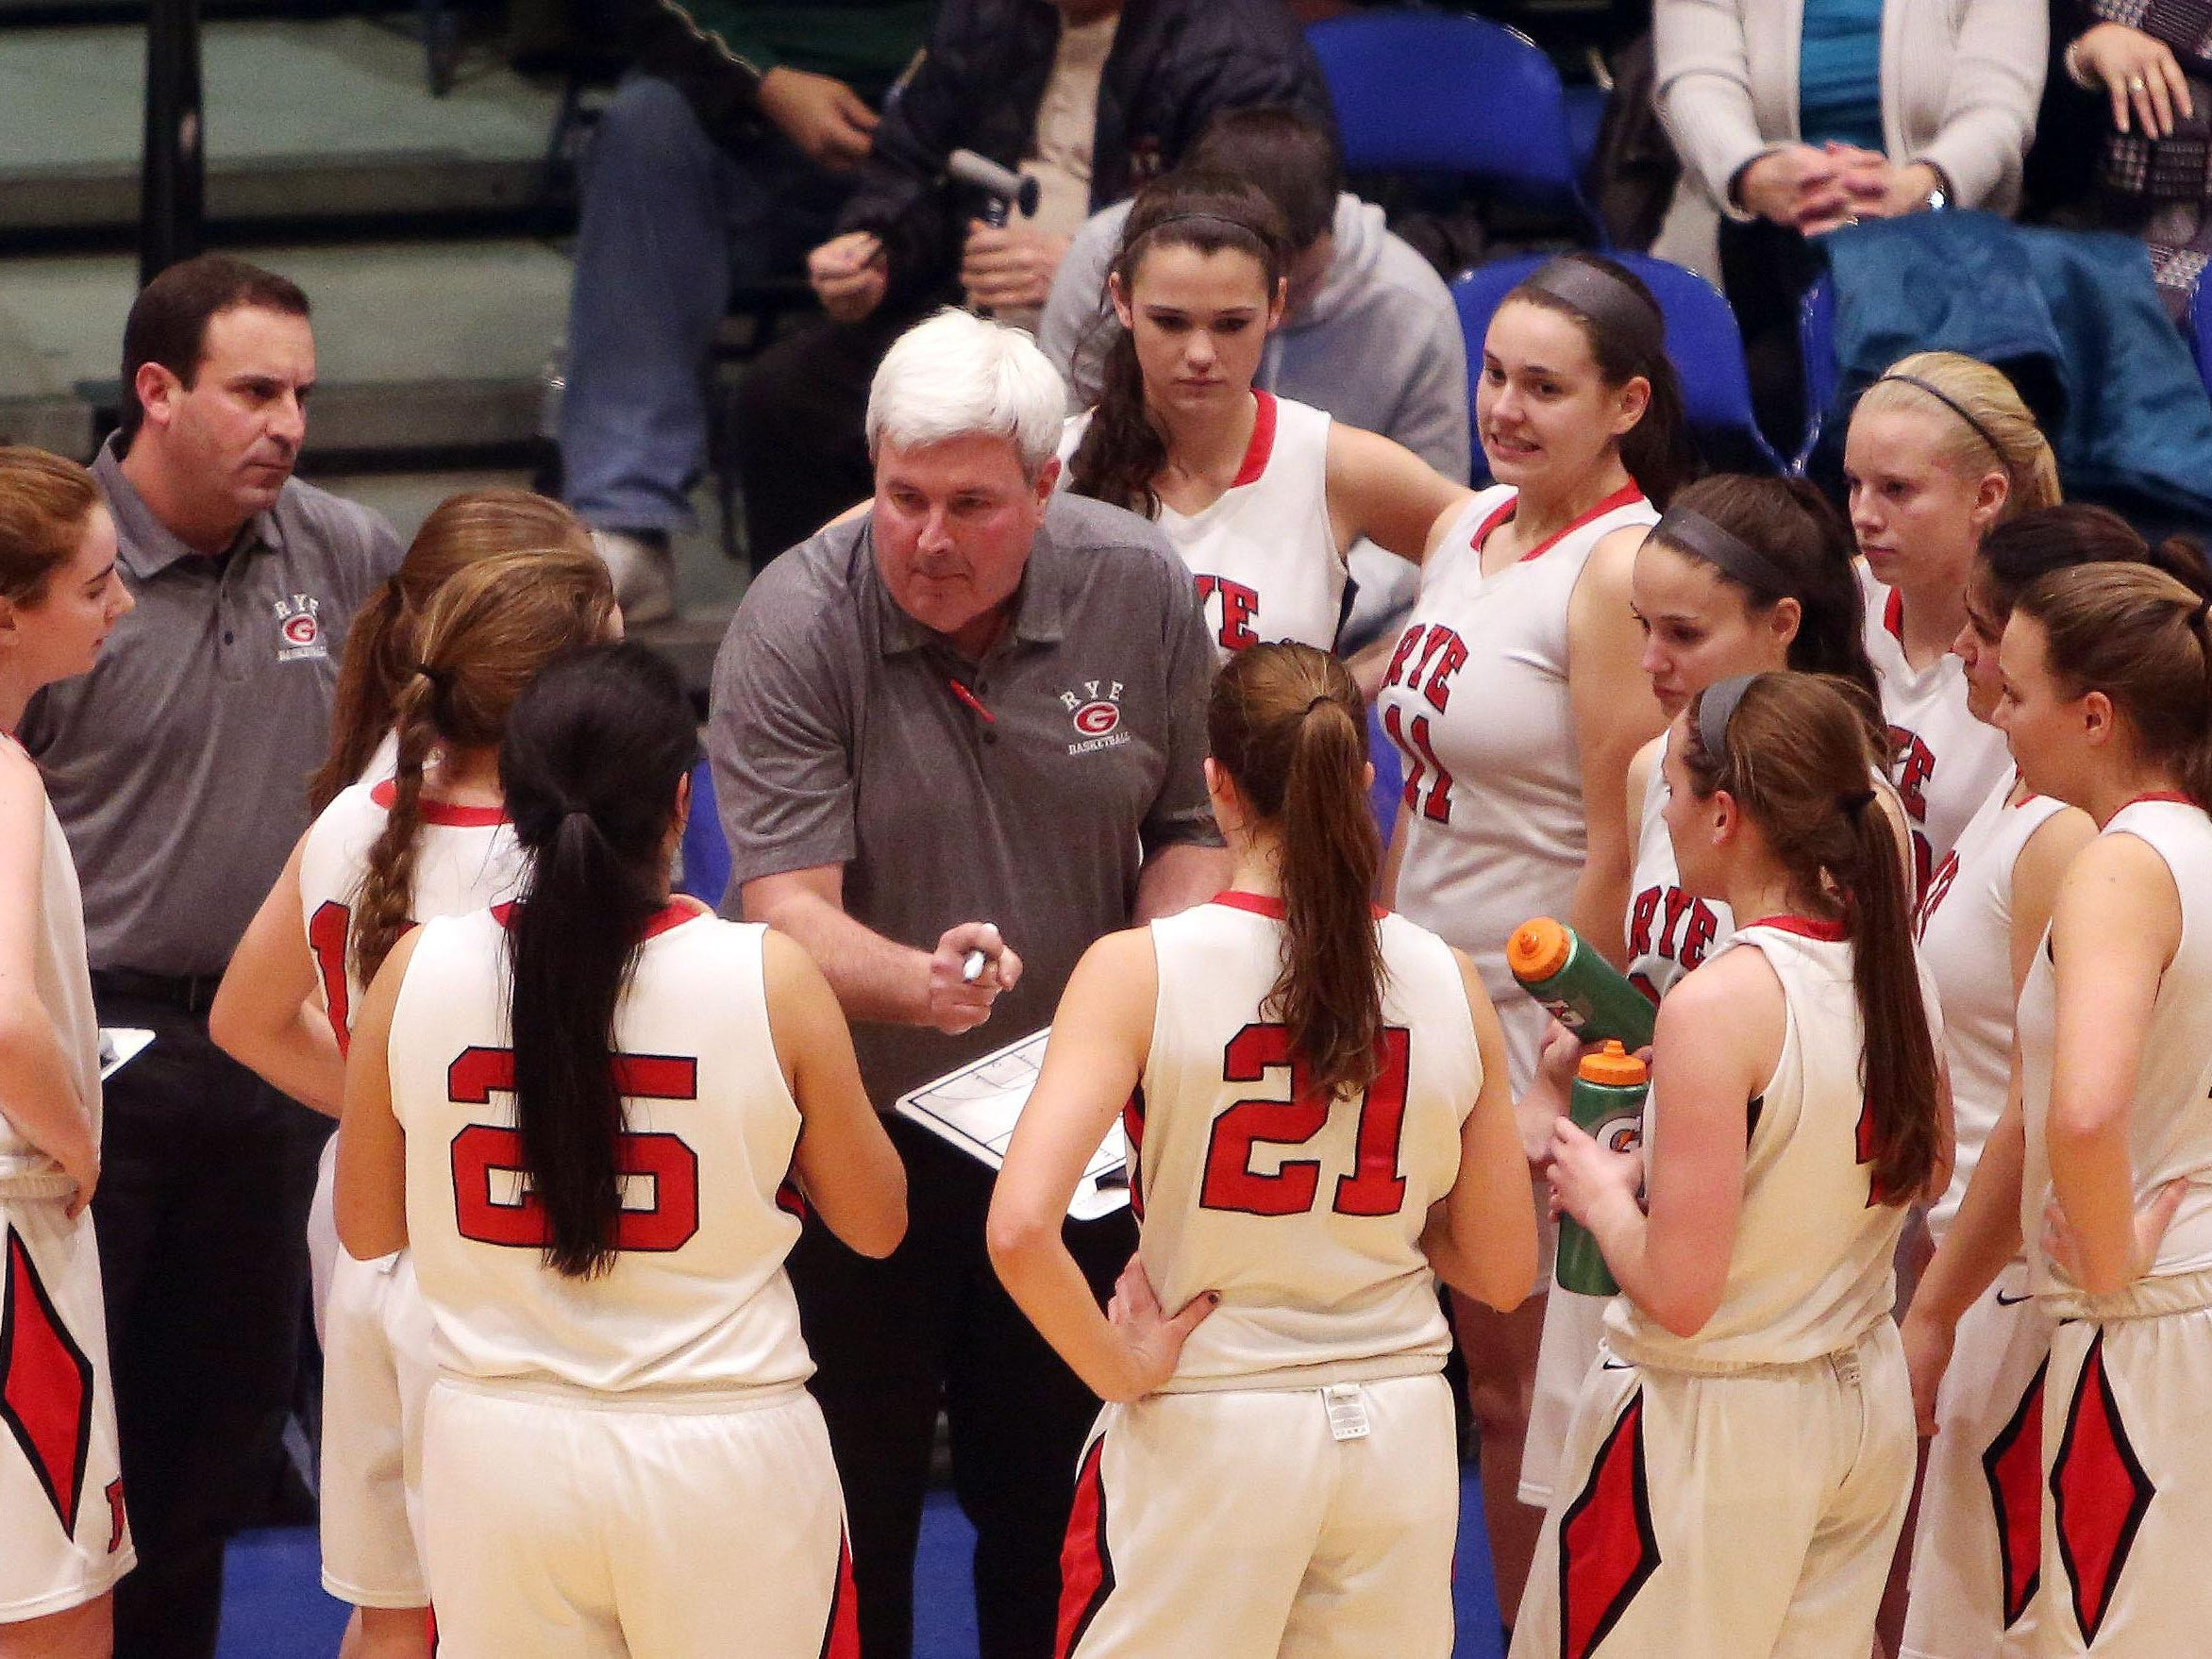 Rye head coach Dennis Hurlie talks to his team during a 37-31 win over Pearl River in the girls Class A semifinal at the Westchester County Center in White Plains. Feb. 25, 2016.